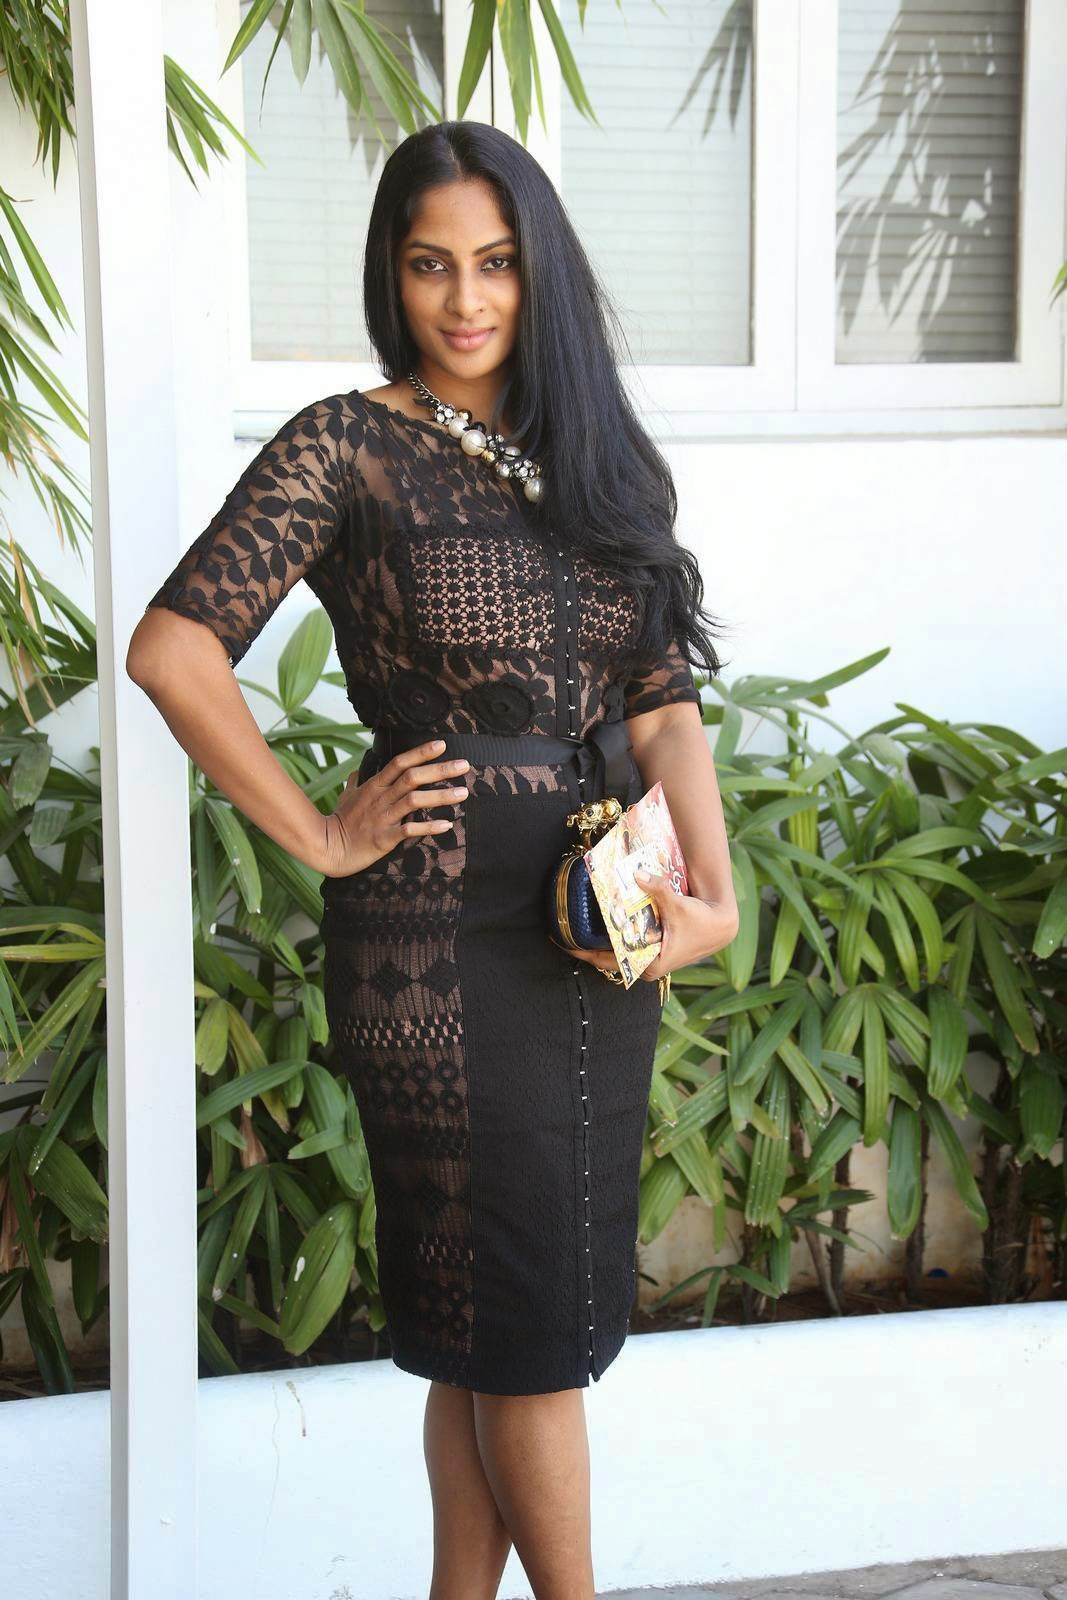 Actress Sriya Reddy Latest Cute Hot Black Mini Skirt Dress Spicy Thighs Show Photos Gallery At Maga Maharaju Audio Launch